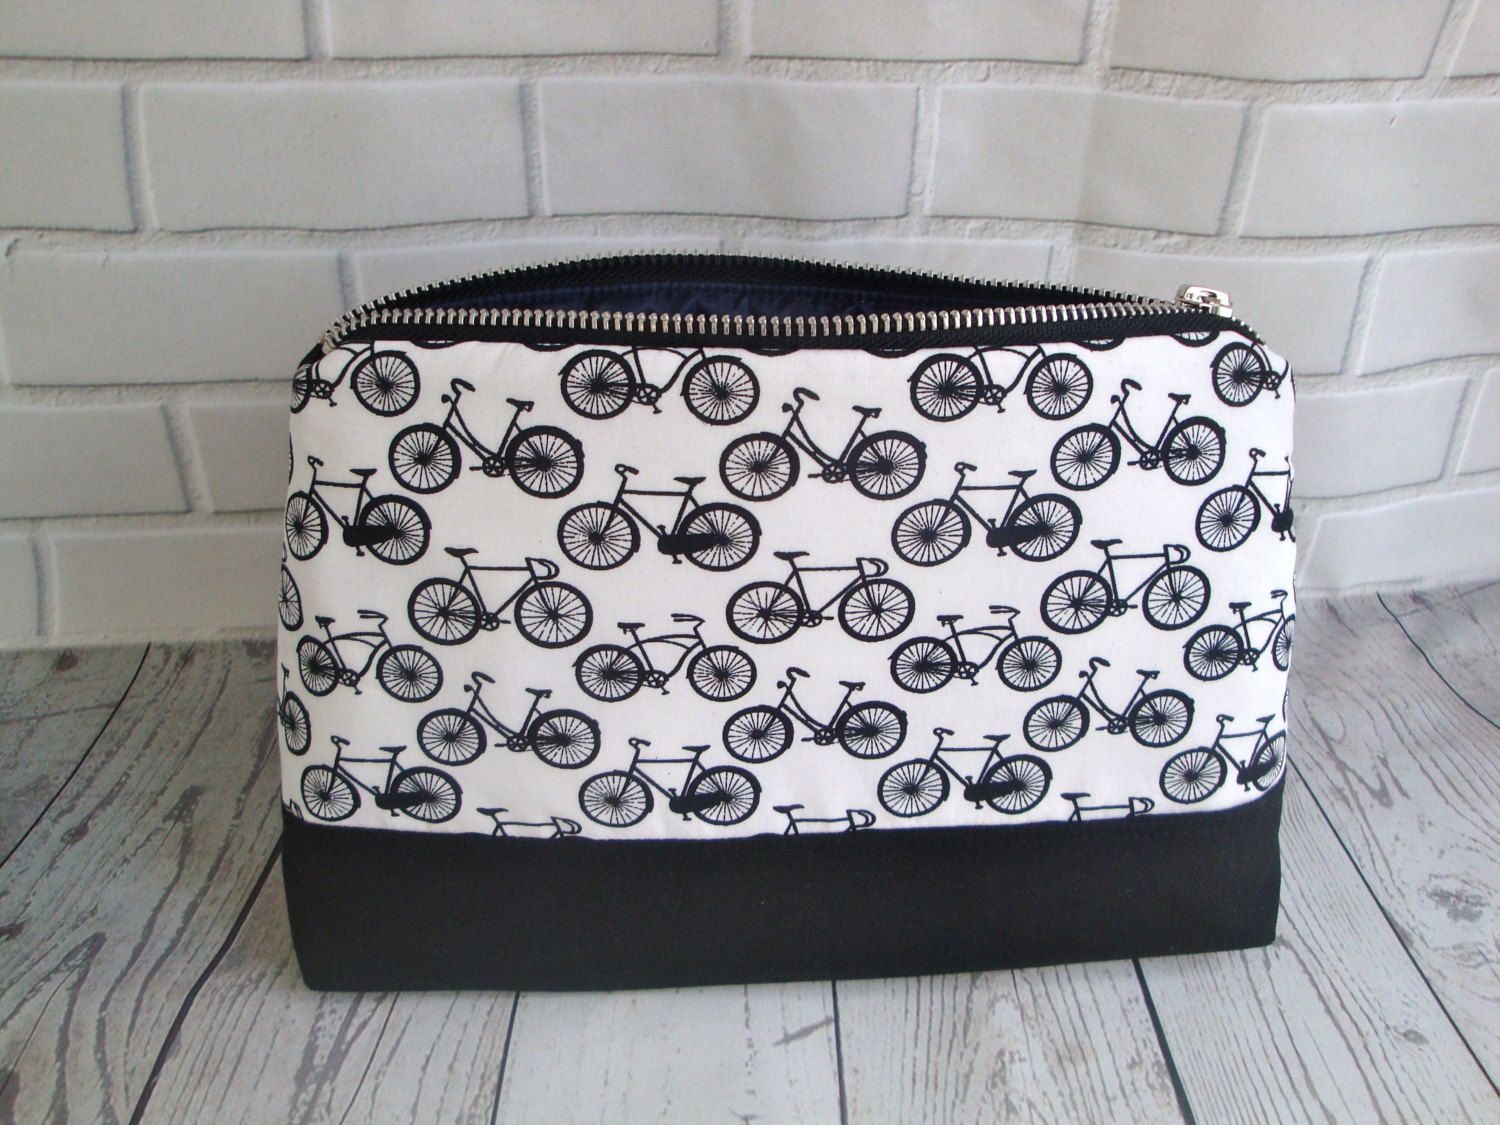 808008108f Mens funky black cotton Wash Bag - handmade - valentines gift - toiletry bag  - gift- bike wash bag - wash bag - unique mens wash bag by GerdaBags on Etsy